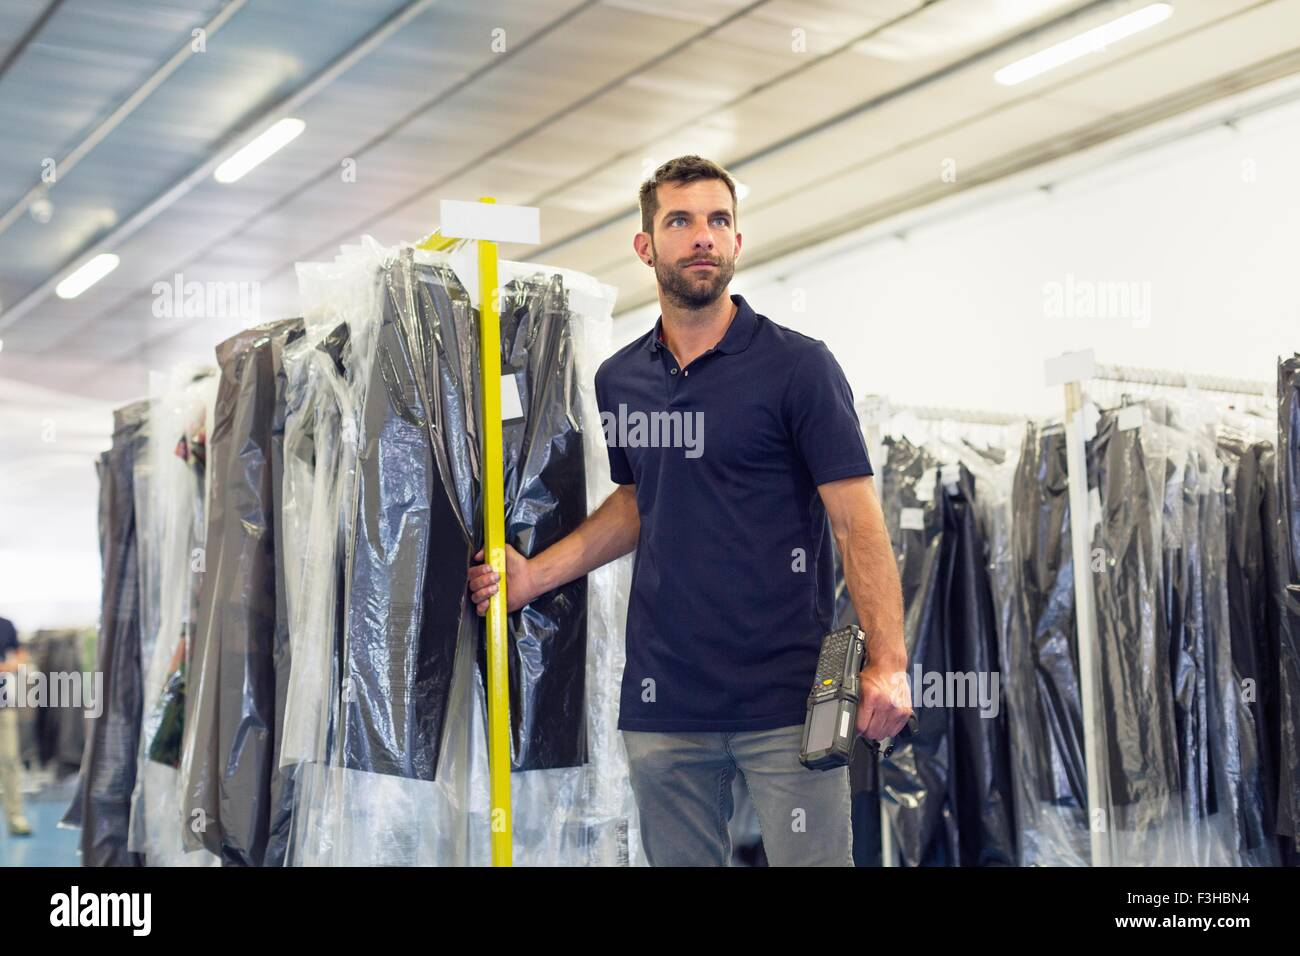 Warehouse worker pulling garment clothes rail in distribution warehouse - Stock Image